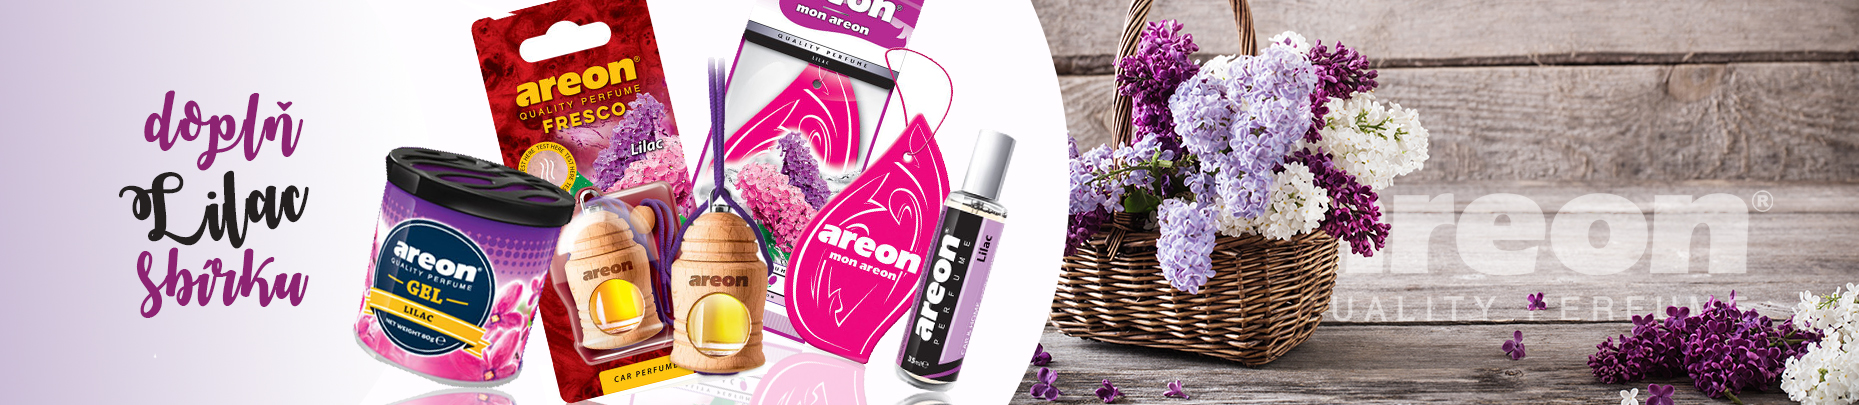 areon-lilac-sbirka-produkt-banner